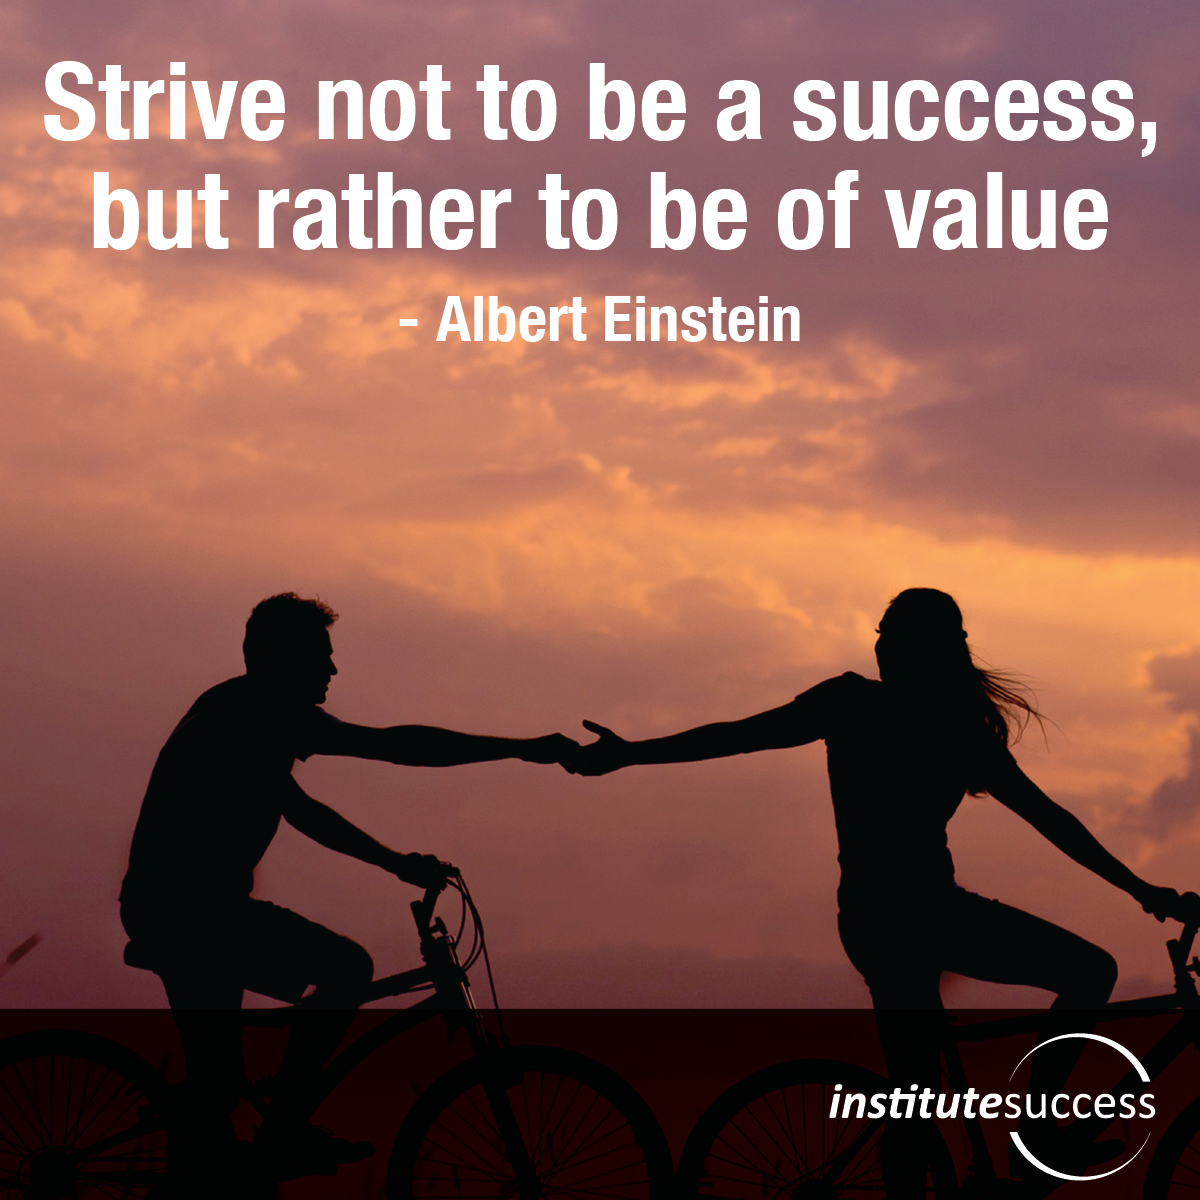 Strive not to be a success, but rather to be of value – Albert Einstein